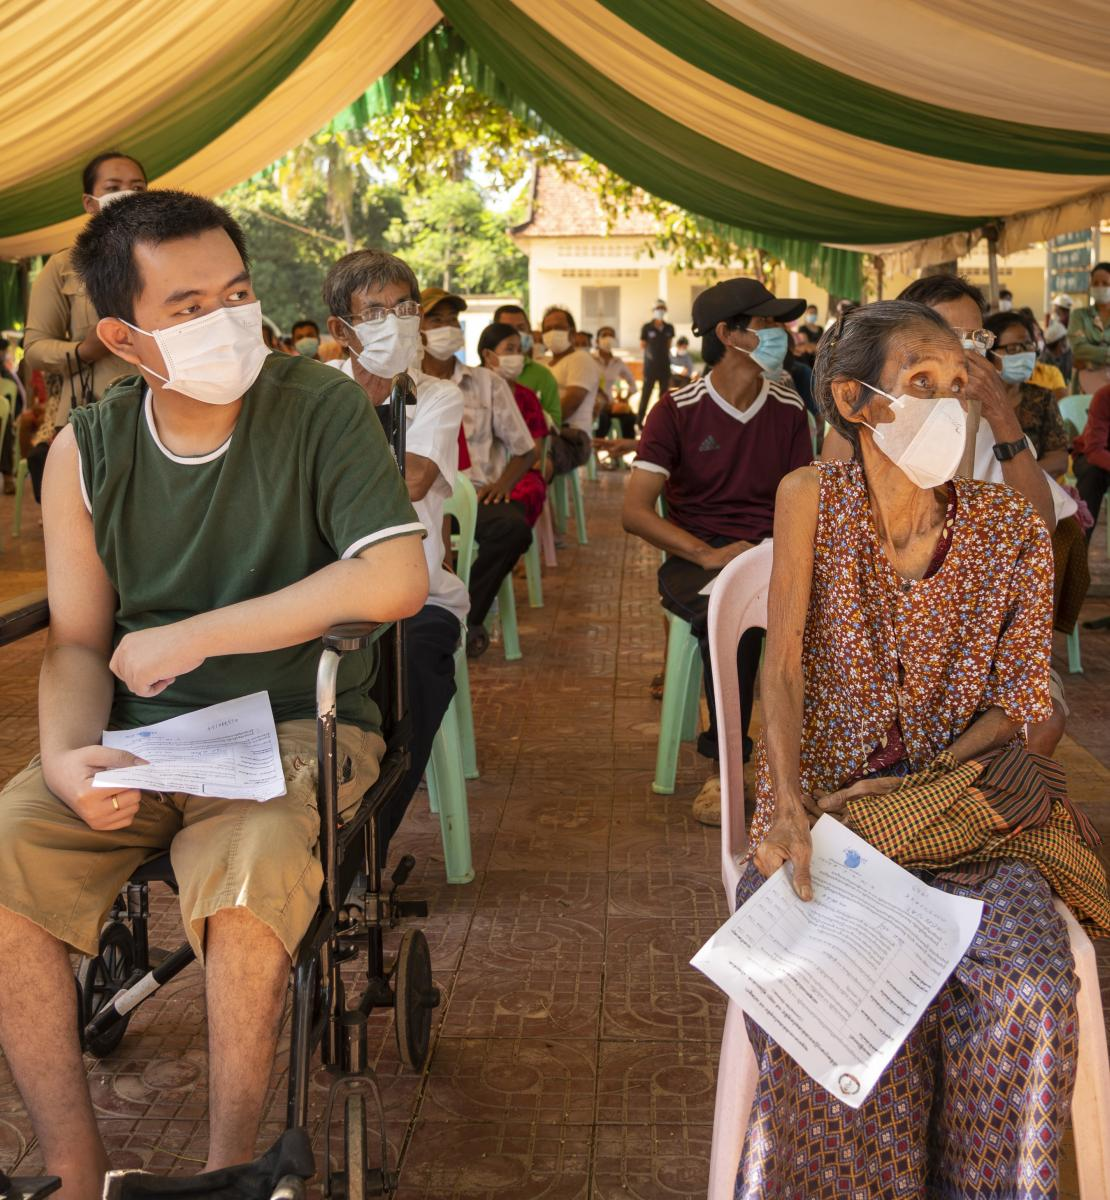 Elder and people with disabilities sit socially distanced and masked as they wait for their vaccinations.